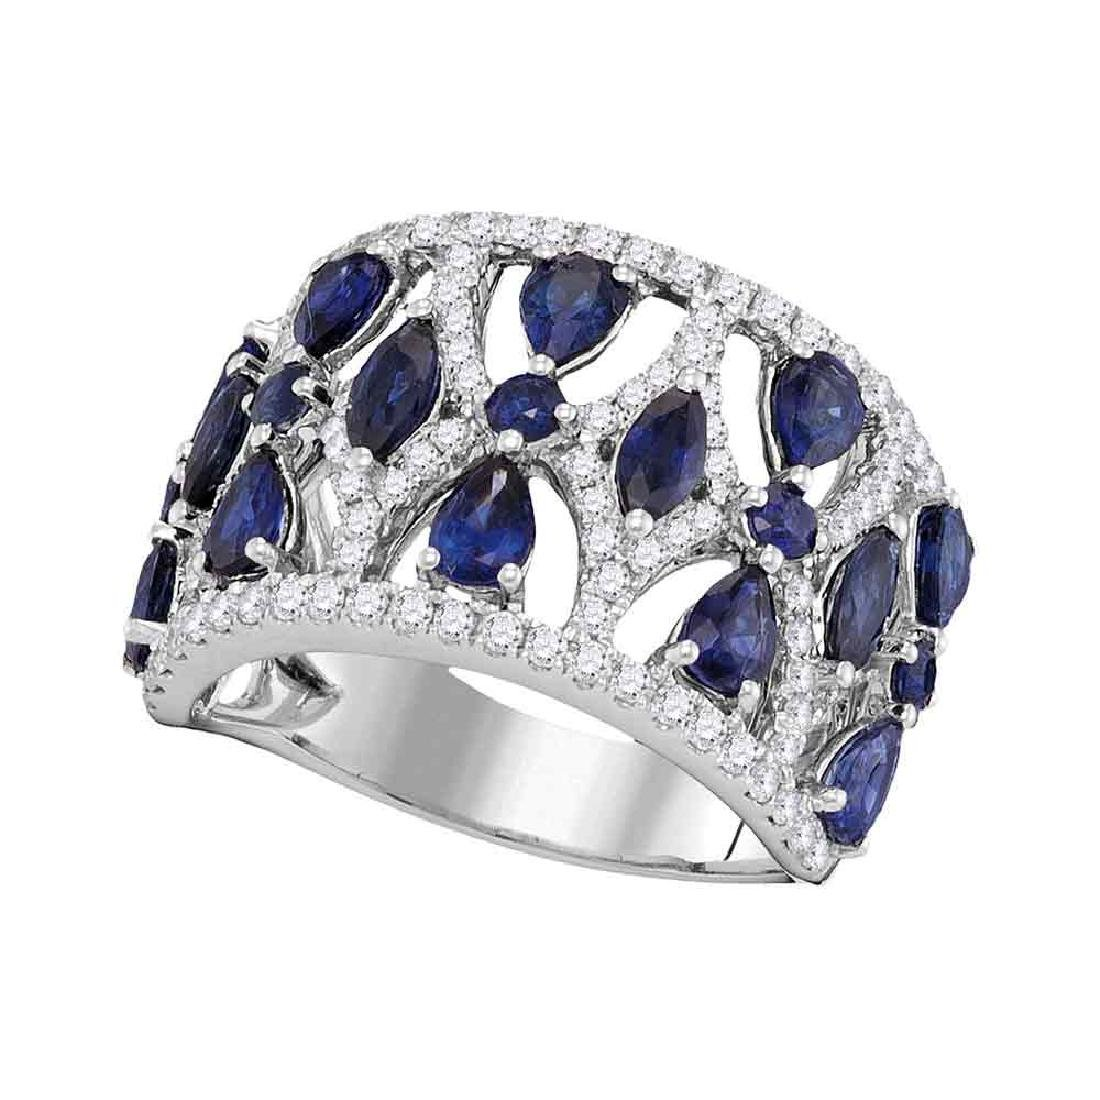 3.95 CTW Pear Prong-set Blue Sapphire Openwork Ring